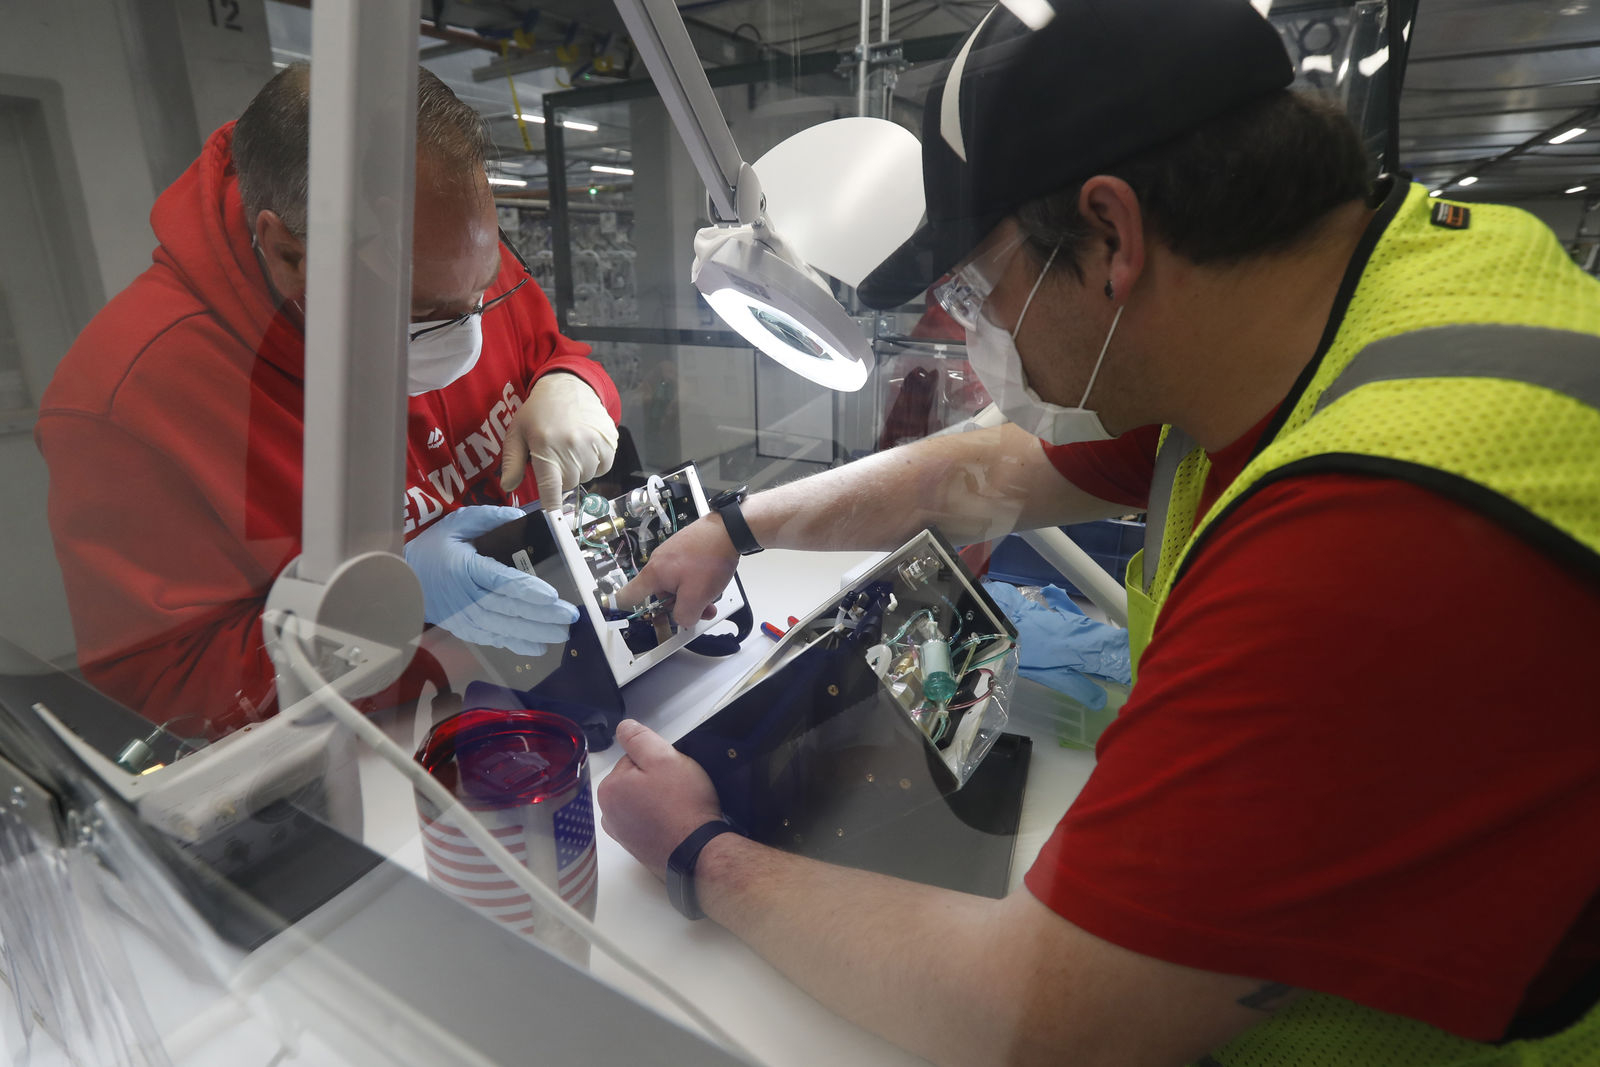 Ford Motor Co., team leader Kyle Lenart, right, inspects a ventilator that the automaker is assembling at the Ford Rawsonville plant, Wednesday, May 13, 2020 in Ypsilanti Township, Mich. (AP Photo/Carlos Osorio)